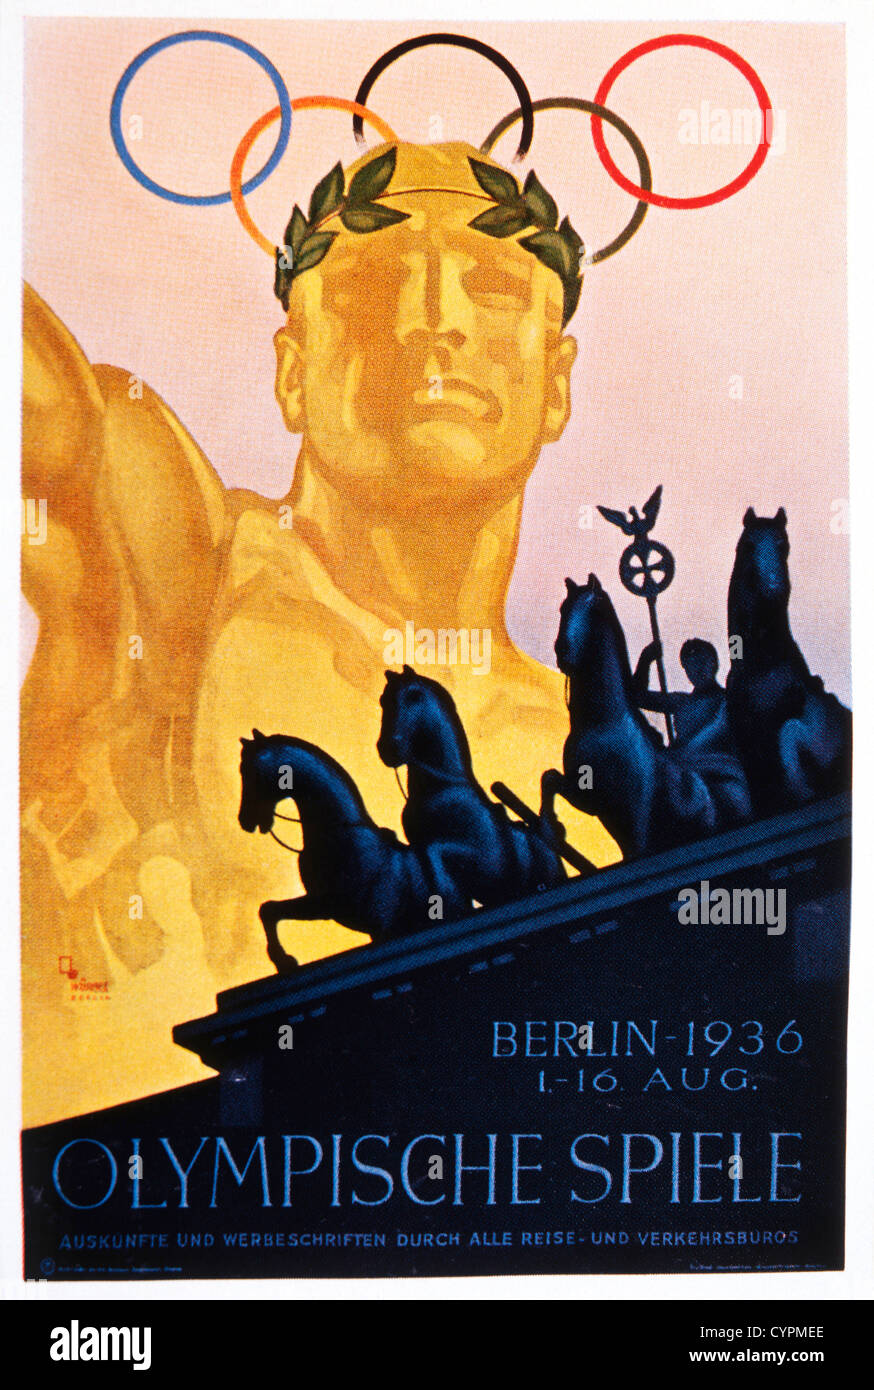 An analysis of the berlin in 1936 and the olympic games